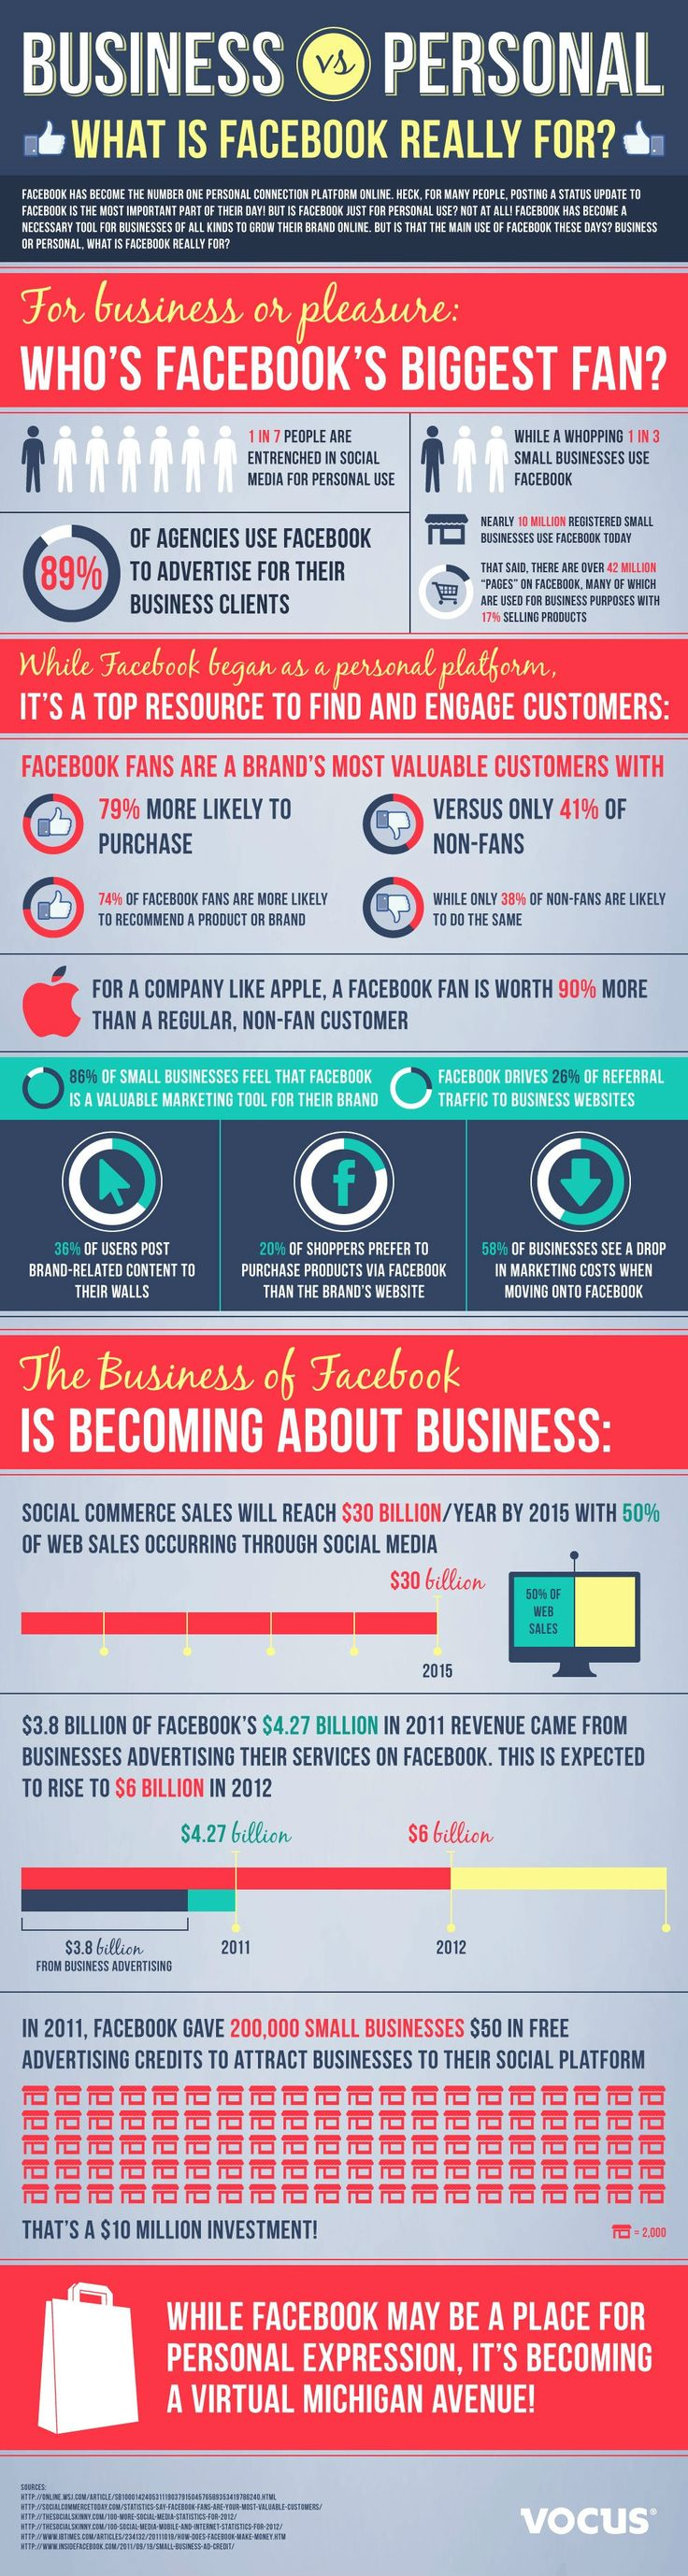 50% of Web Sales to Occur Via Social Media by 2015 #infographic #socialmedia #sales